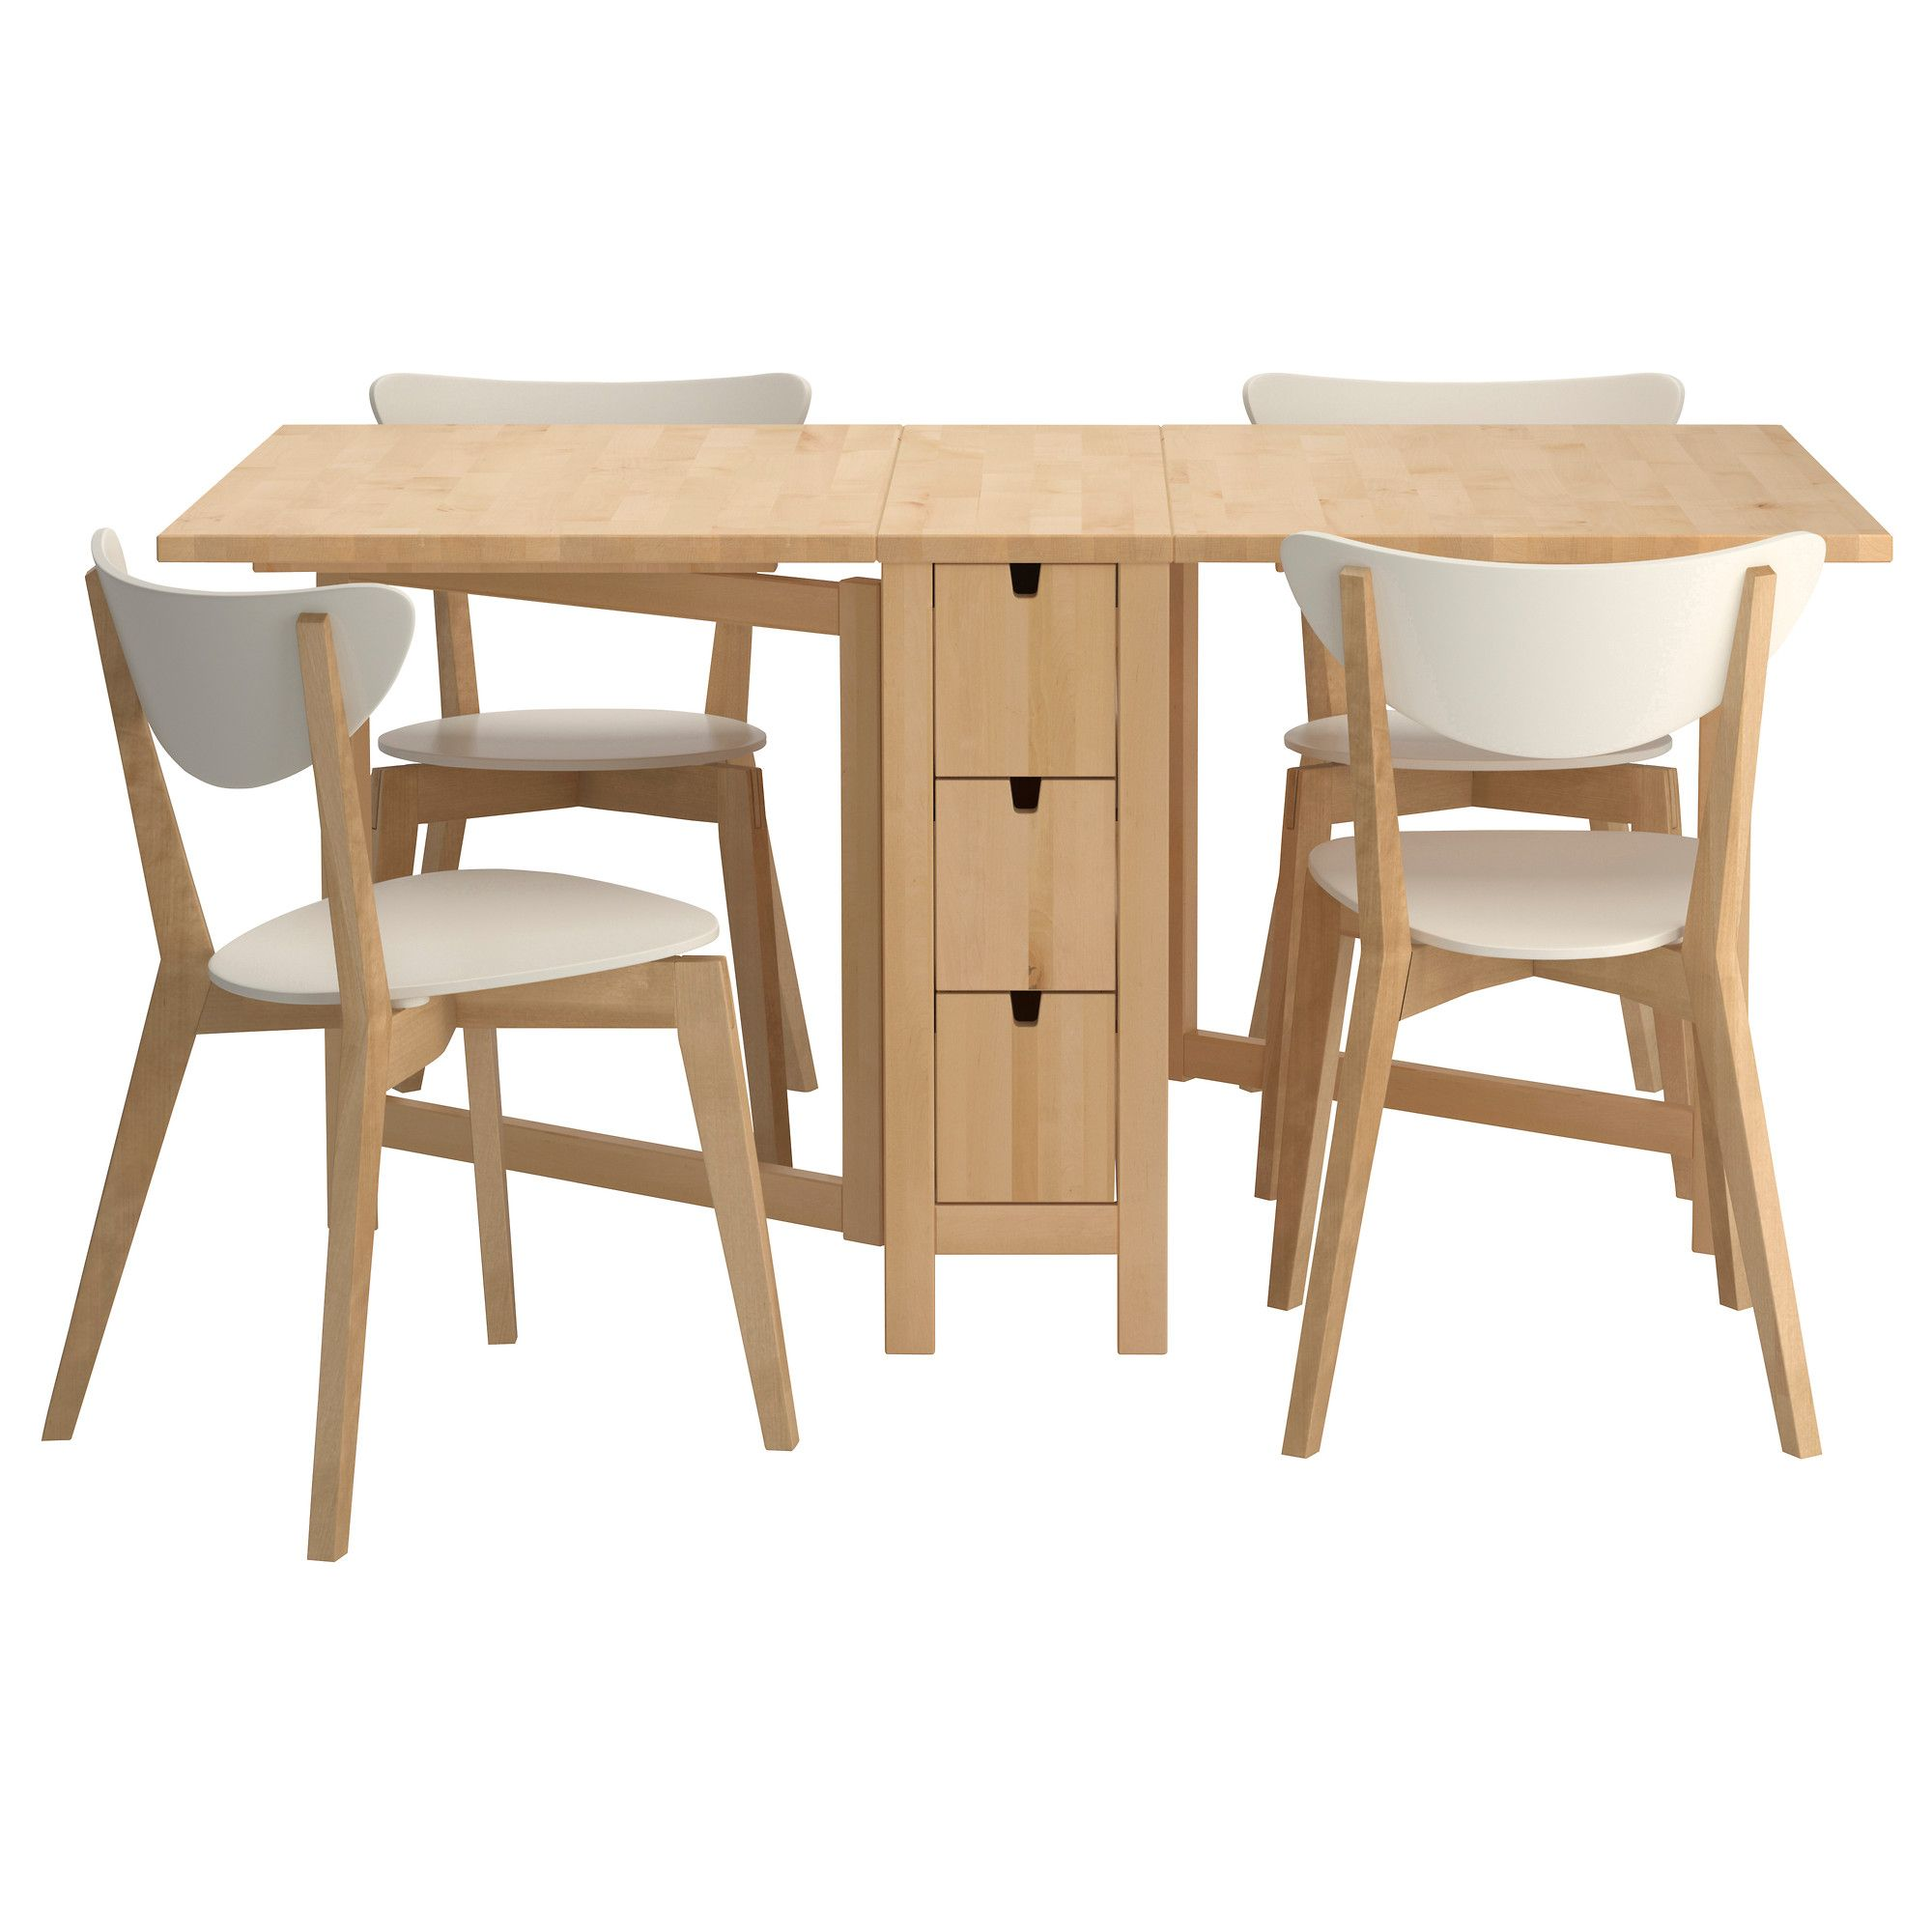 Norden nordmyra table and 4 chairs ikea for the love for Breakfast table and chairs